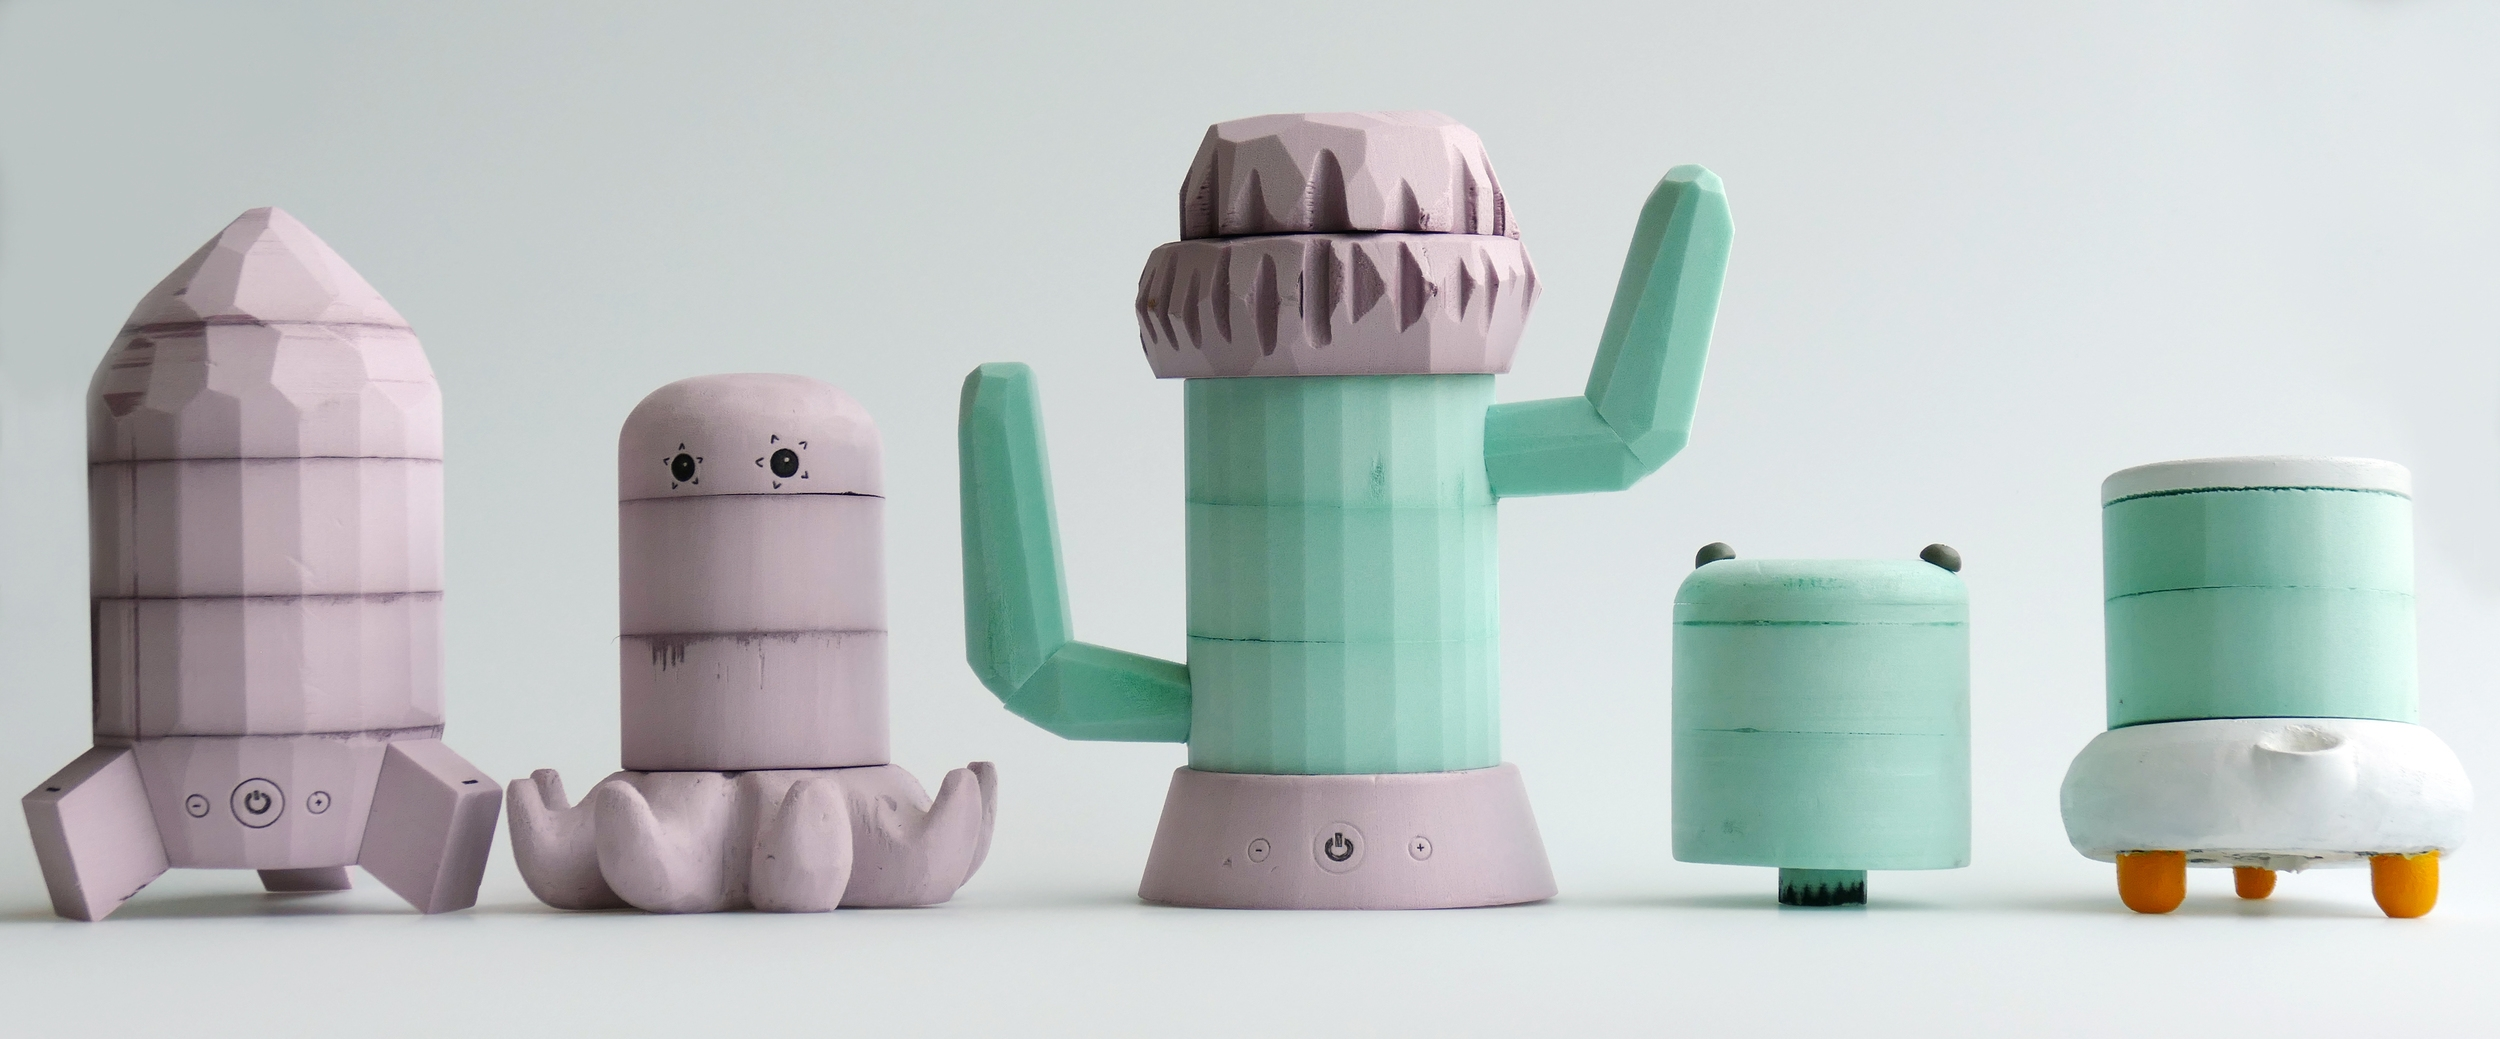 I initially began by designing playful humidifiers but quickly realized it is somewhat unfair to place an object that looks like a toy on a child 's nightstand and tell them not to play with it. I therefore chose a simpler and more neutral design that could fit in most bedrooms.